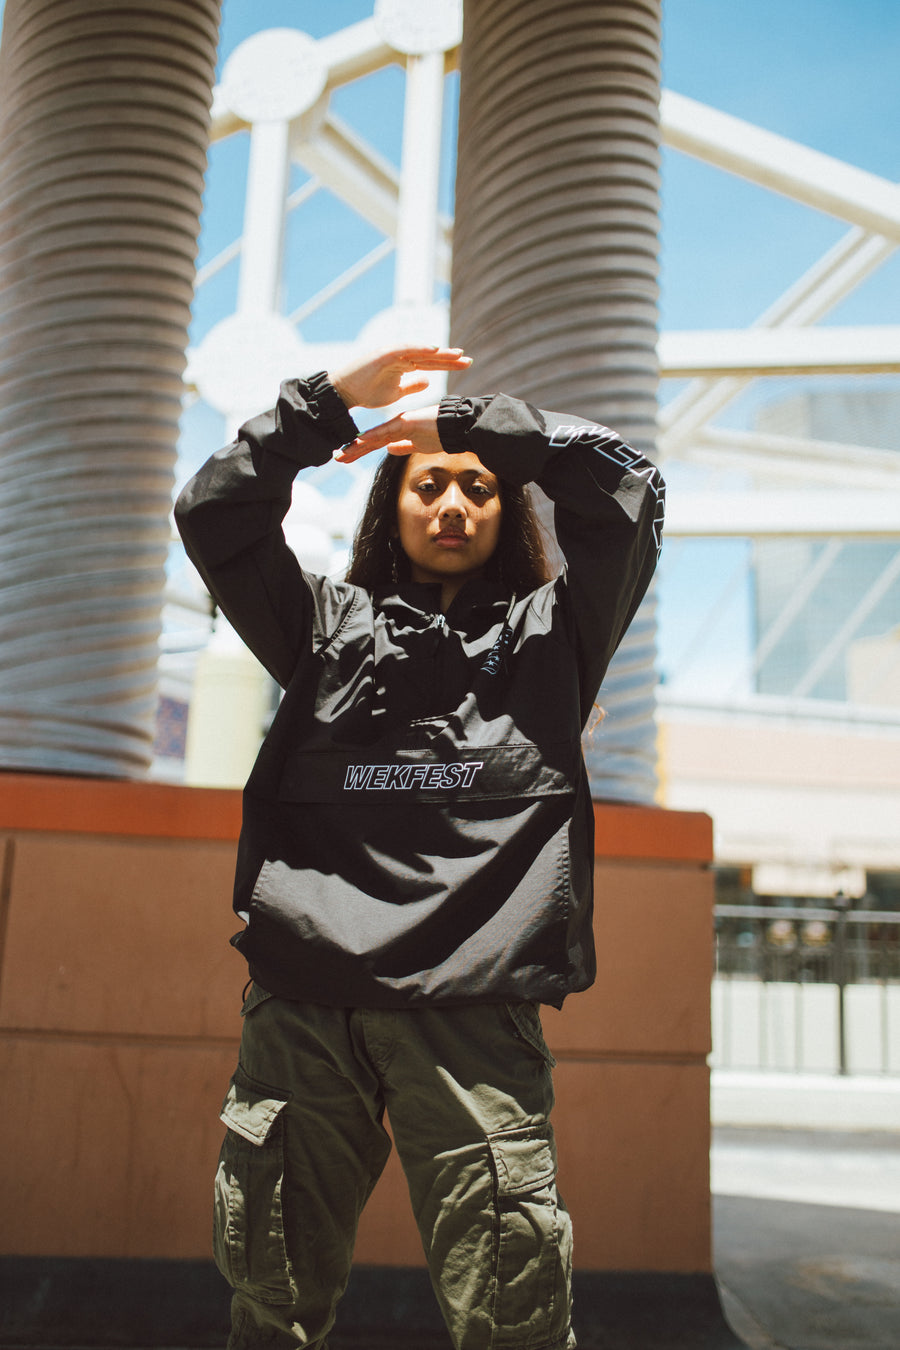 WEKFEST S/S 19' OFFICIAL ANORAK